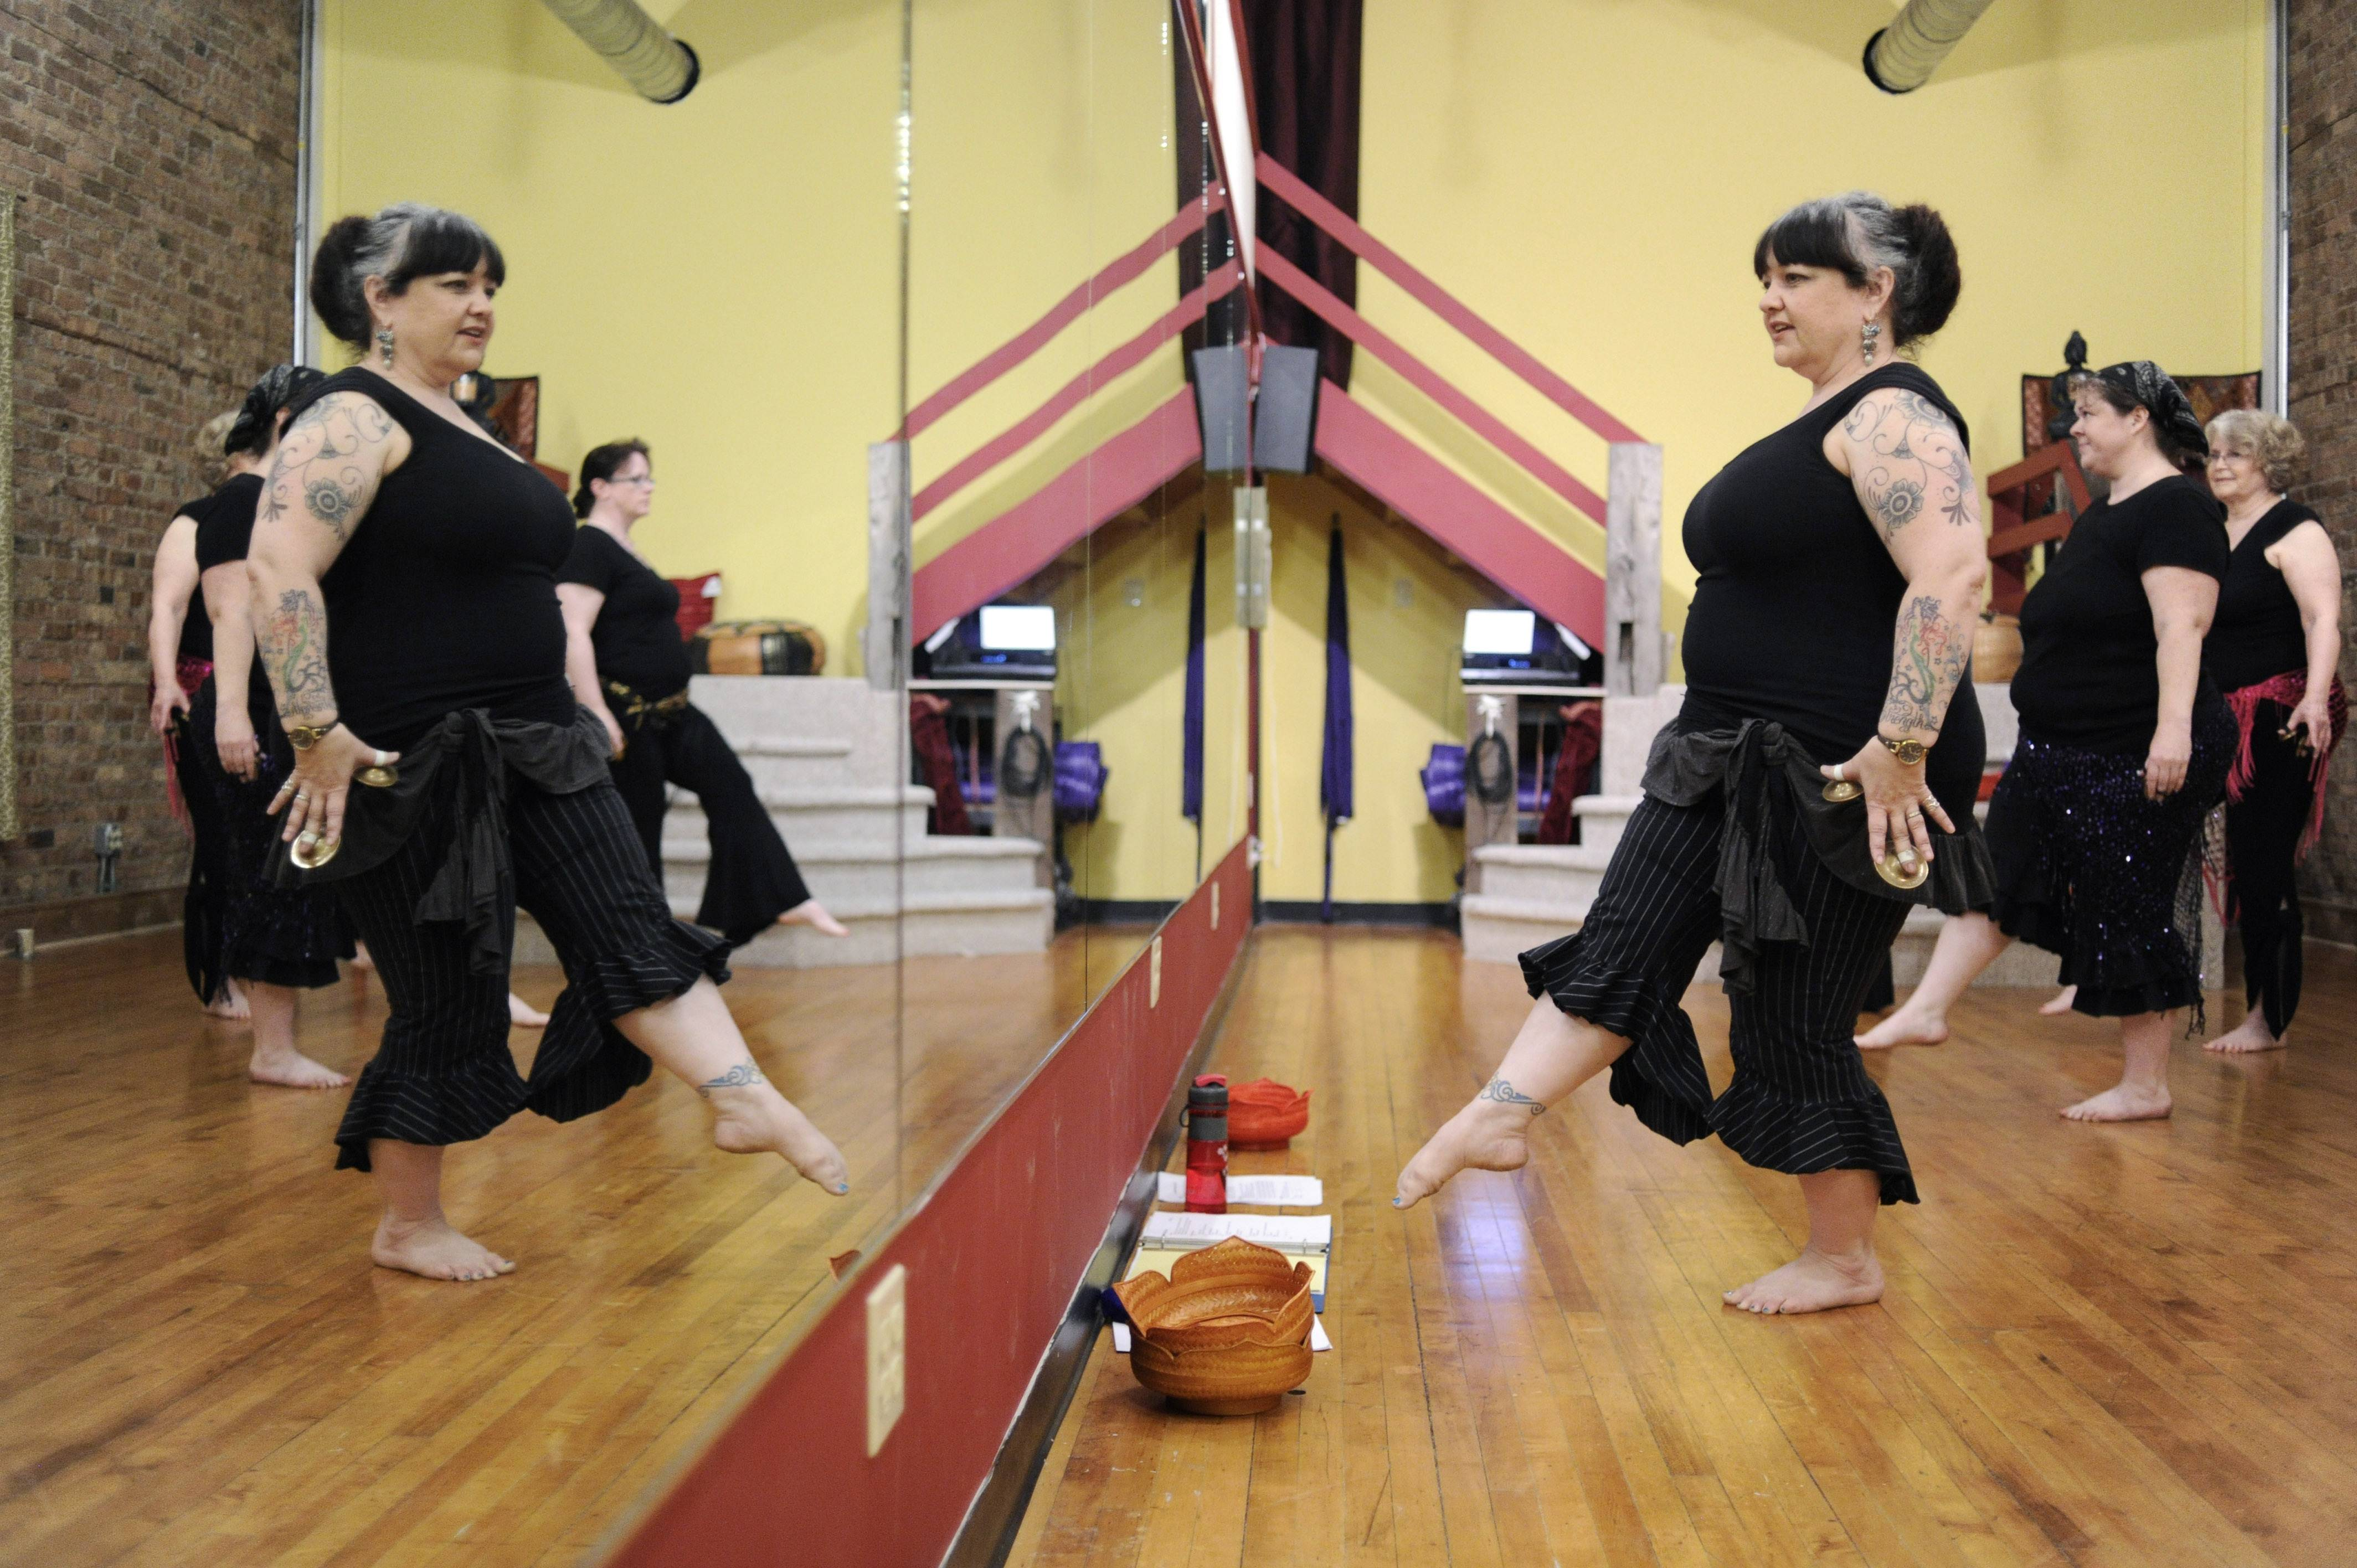 Belly dance instructor Christina King leads students in the Sunday evening class at Eastern Grooves Dance Studio in Elgin.